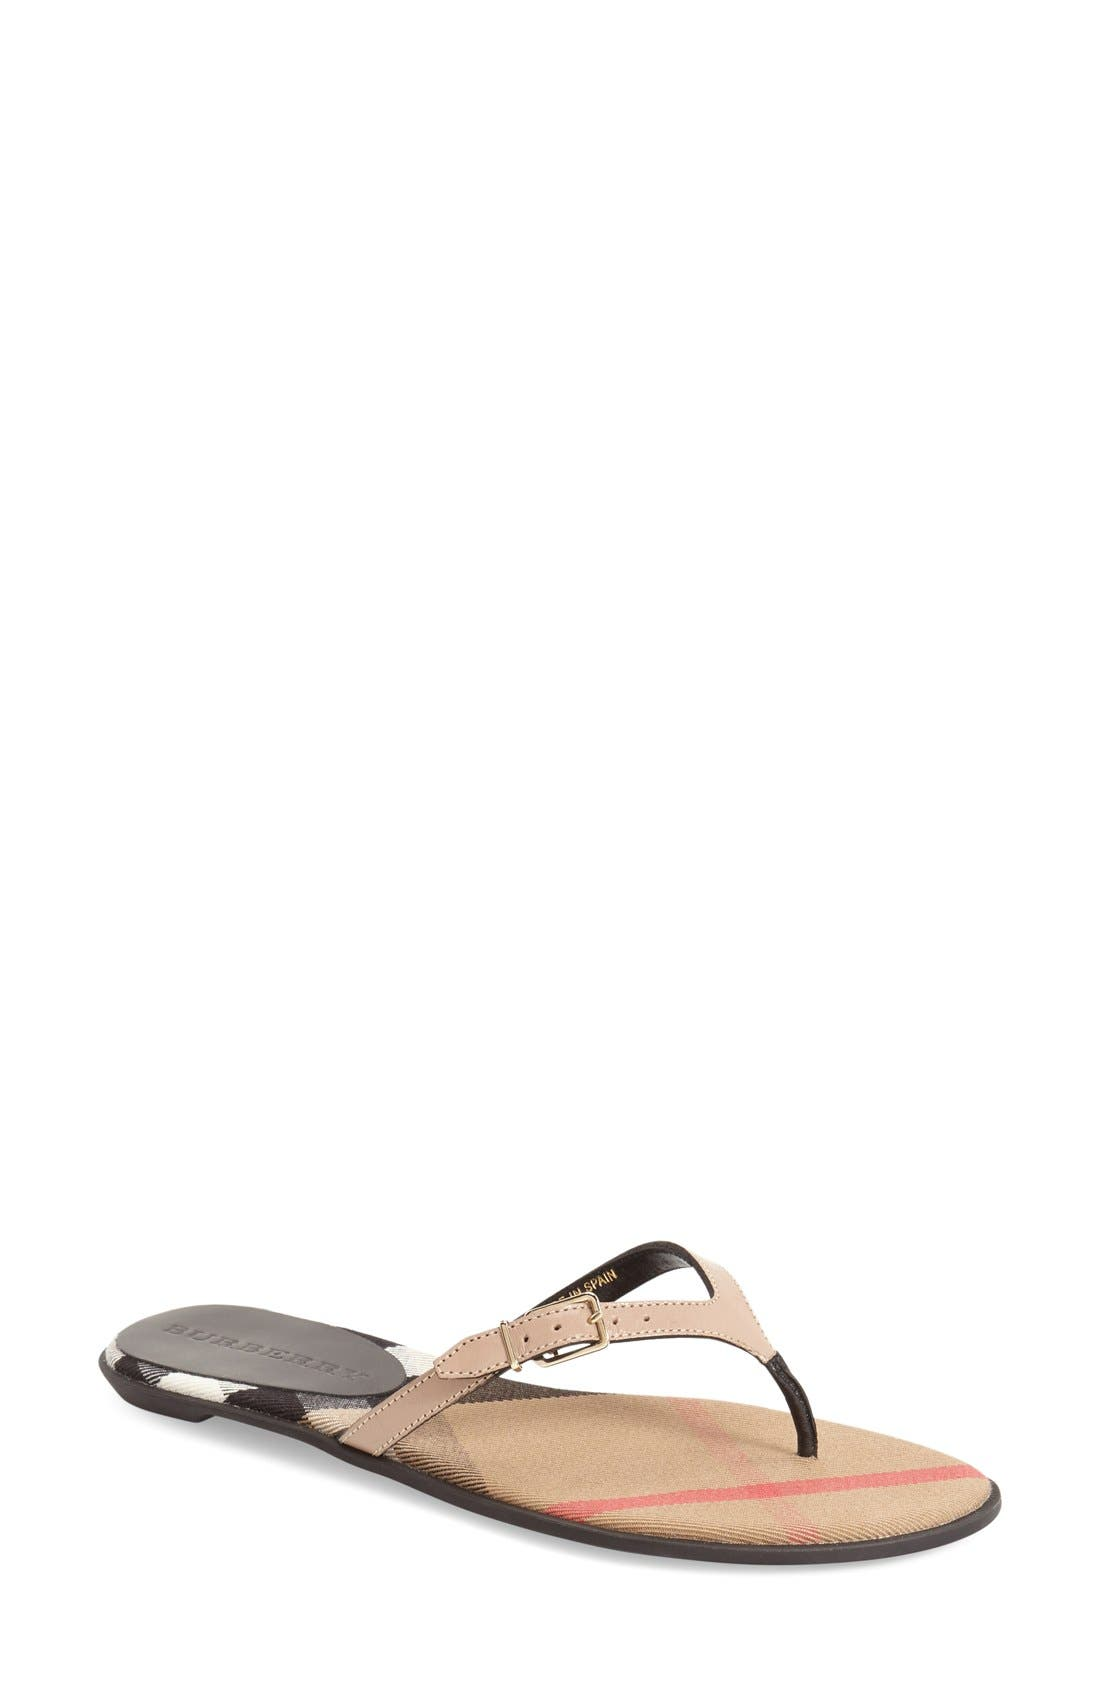 Main Image - Burberry 'Meadow' Sandal